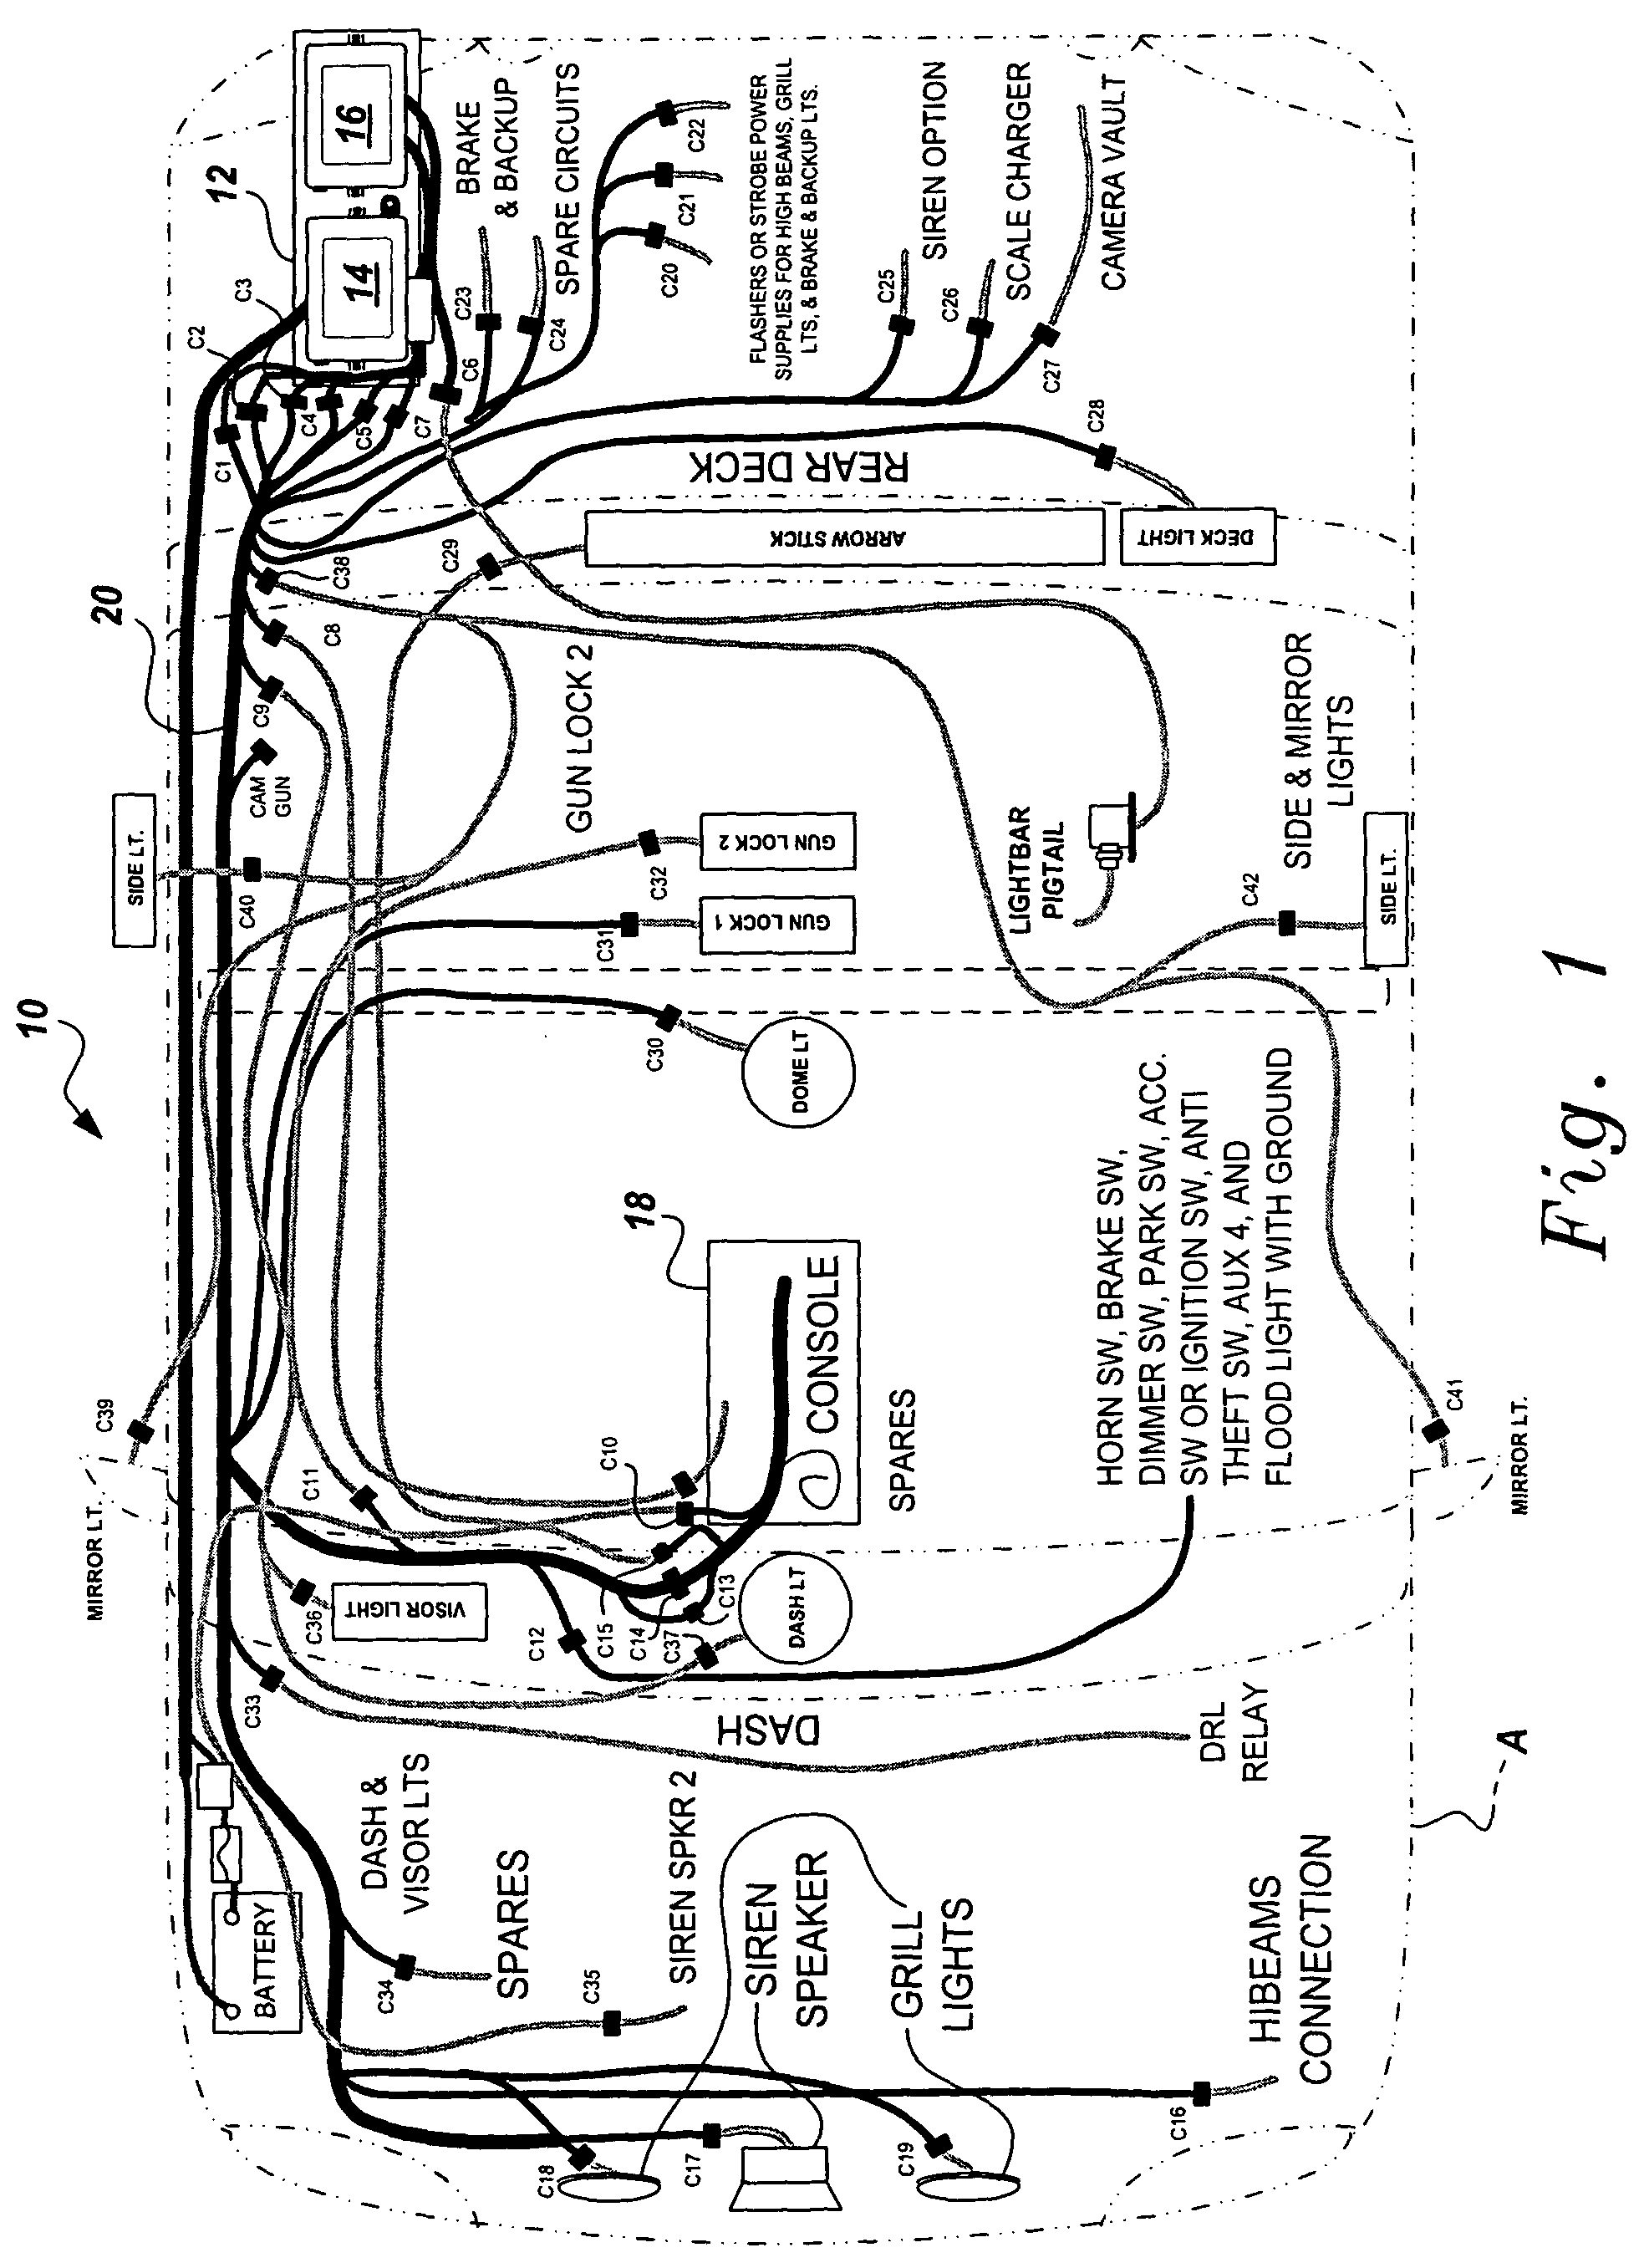 whelen csp660 wiring diagram 28 wiring diagram images wiring  us07342325 20080311 d00001 patent us7342325 universal fleet electrical system google patents whelen csp660 wiring diagram at